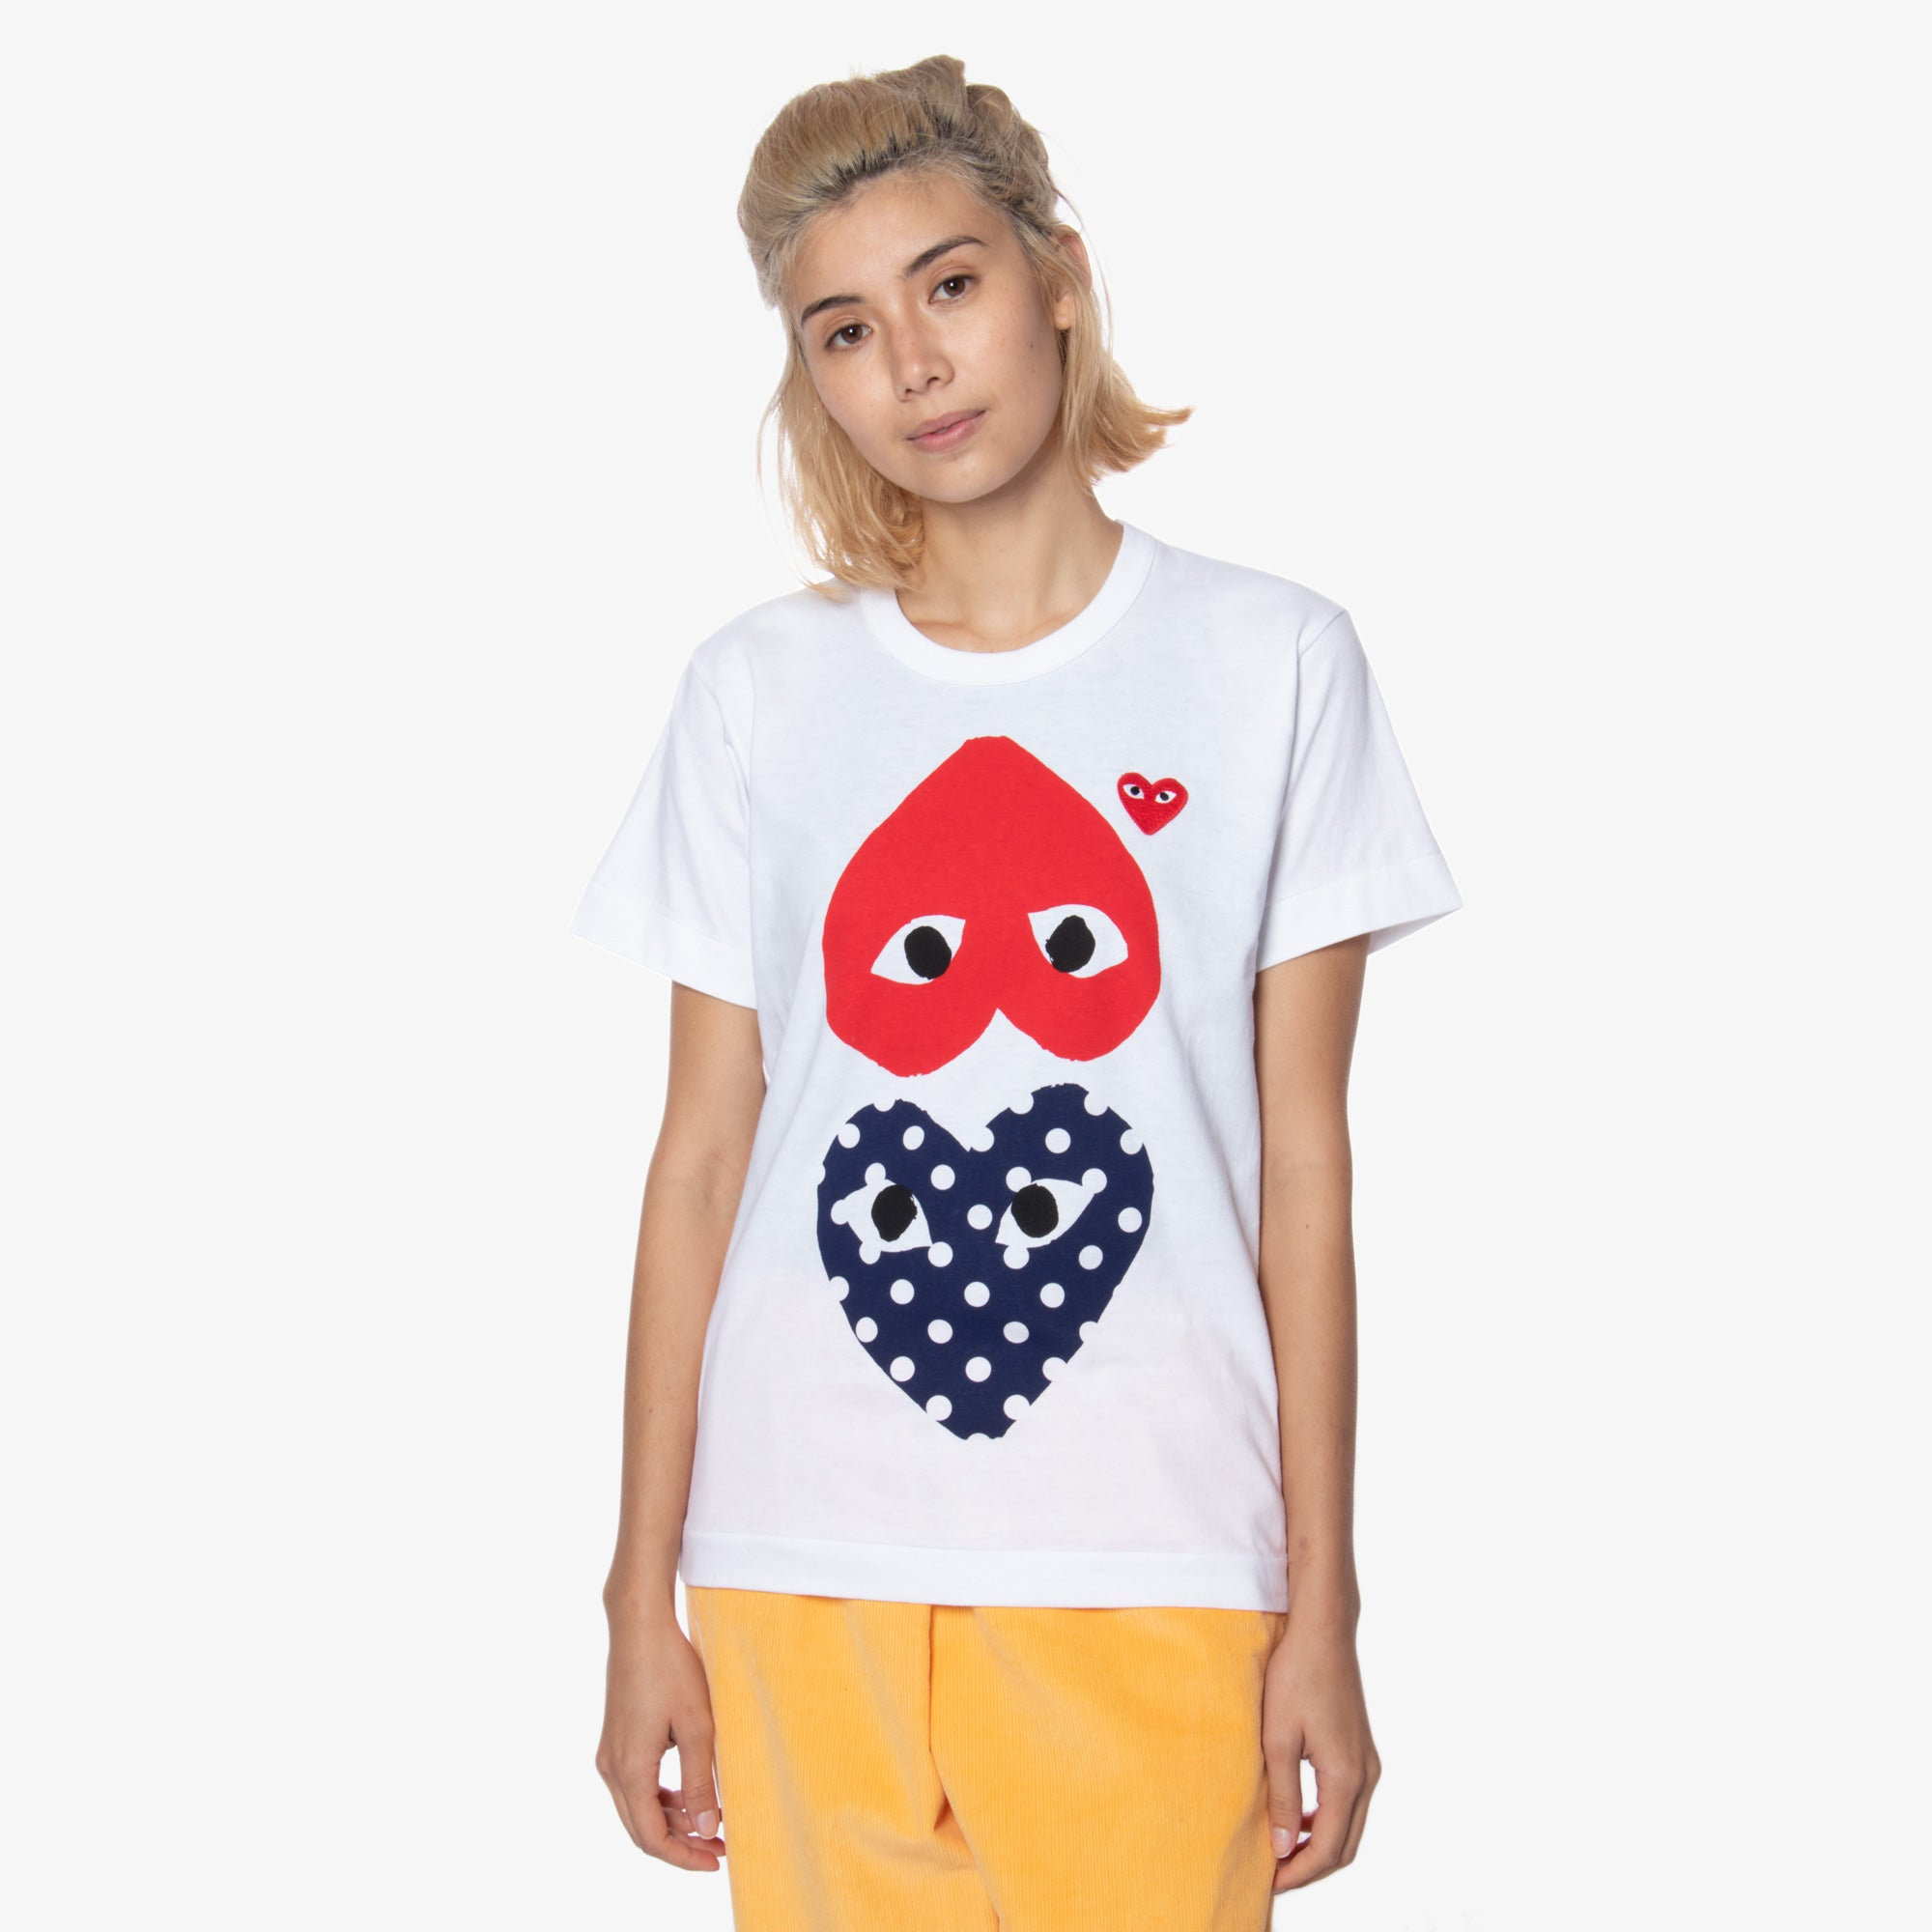 Comme des Garçons - PLAY Upside Down Double Heart Polka Dot Womens Tee - White 1